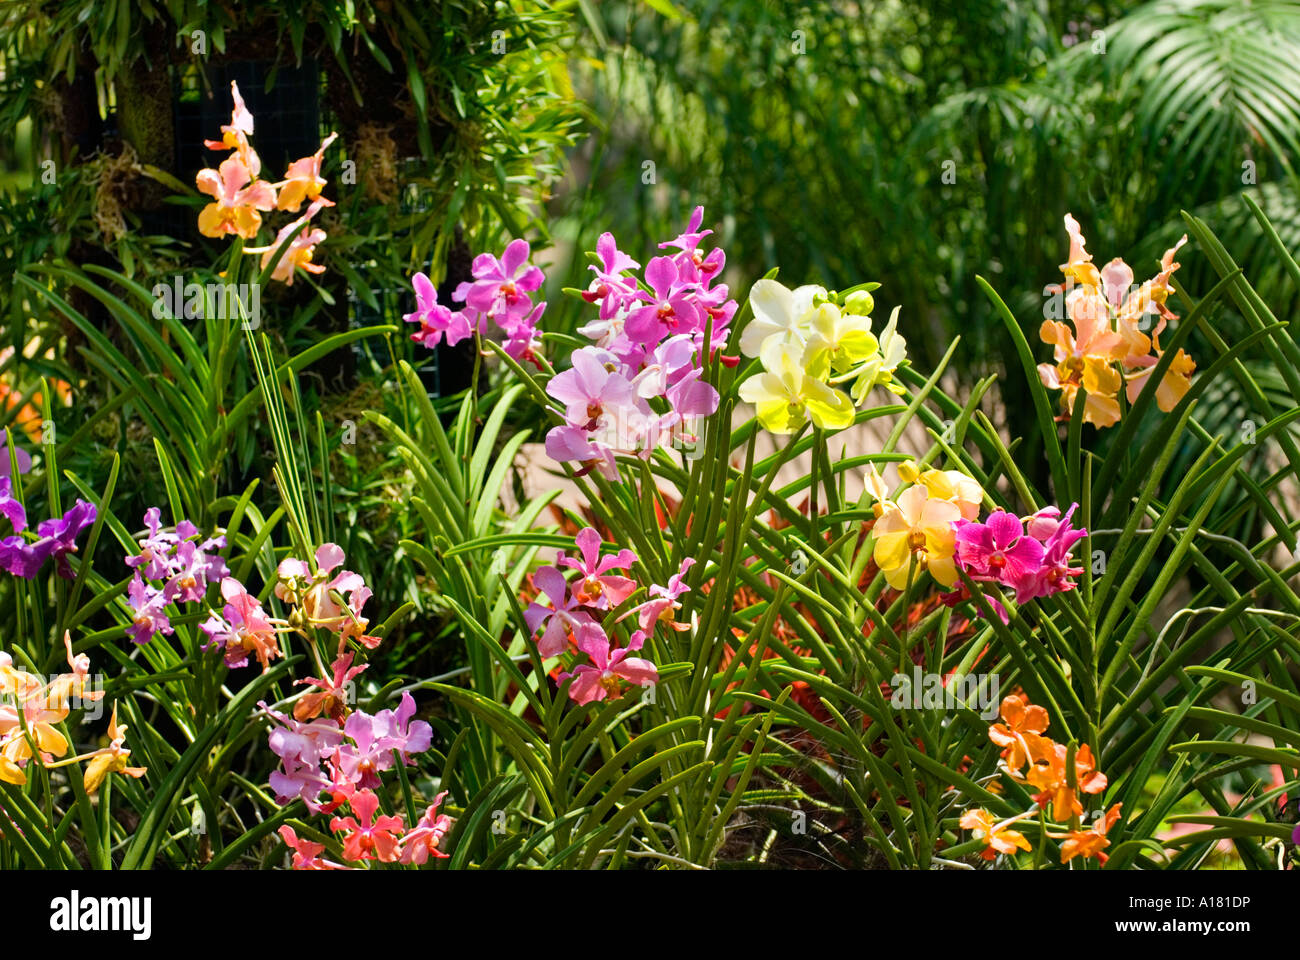 ... Mixed ORCHIDS Plants Cattleya Orchid Orchidgarden Orchid Garden Red  Pink Yellow Green Blue   Stock Photo